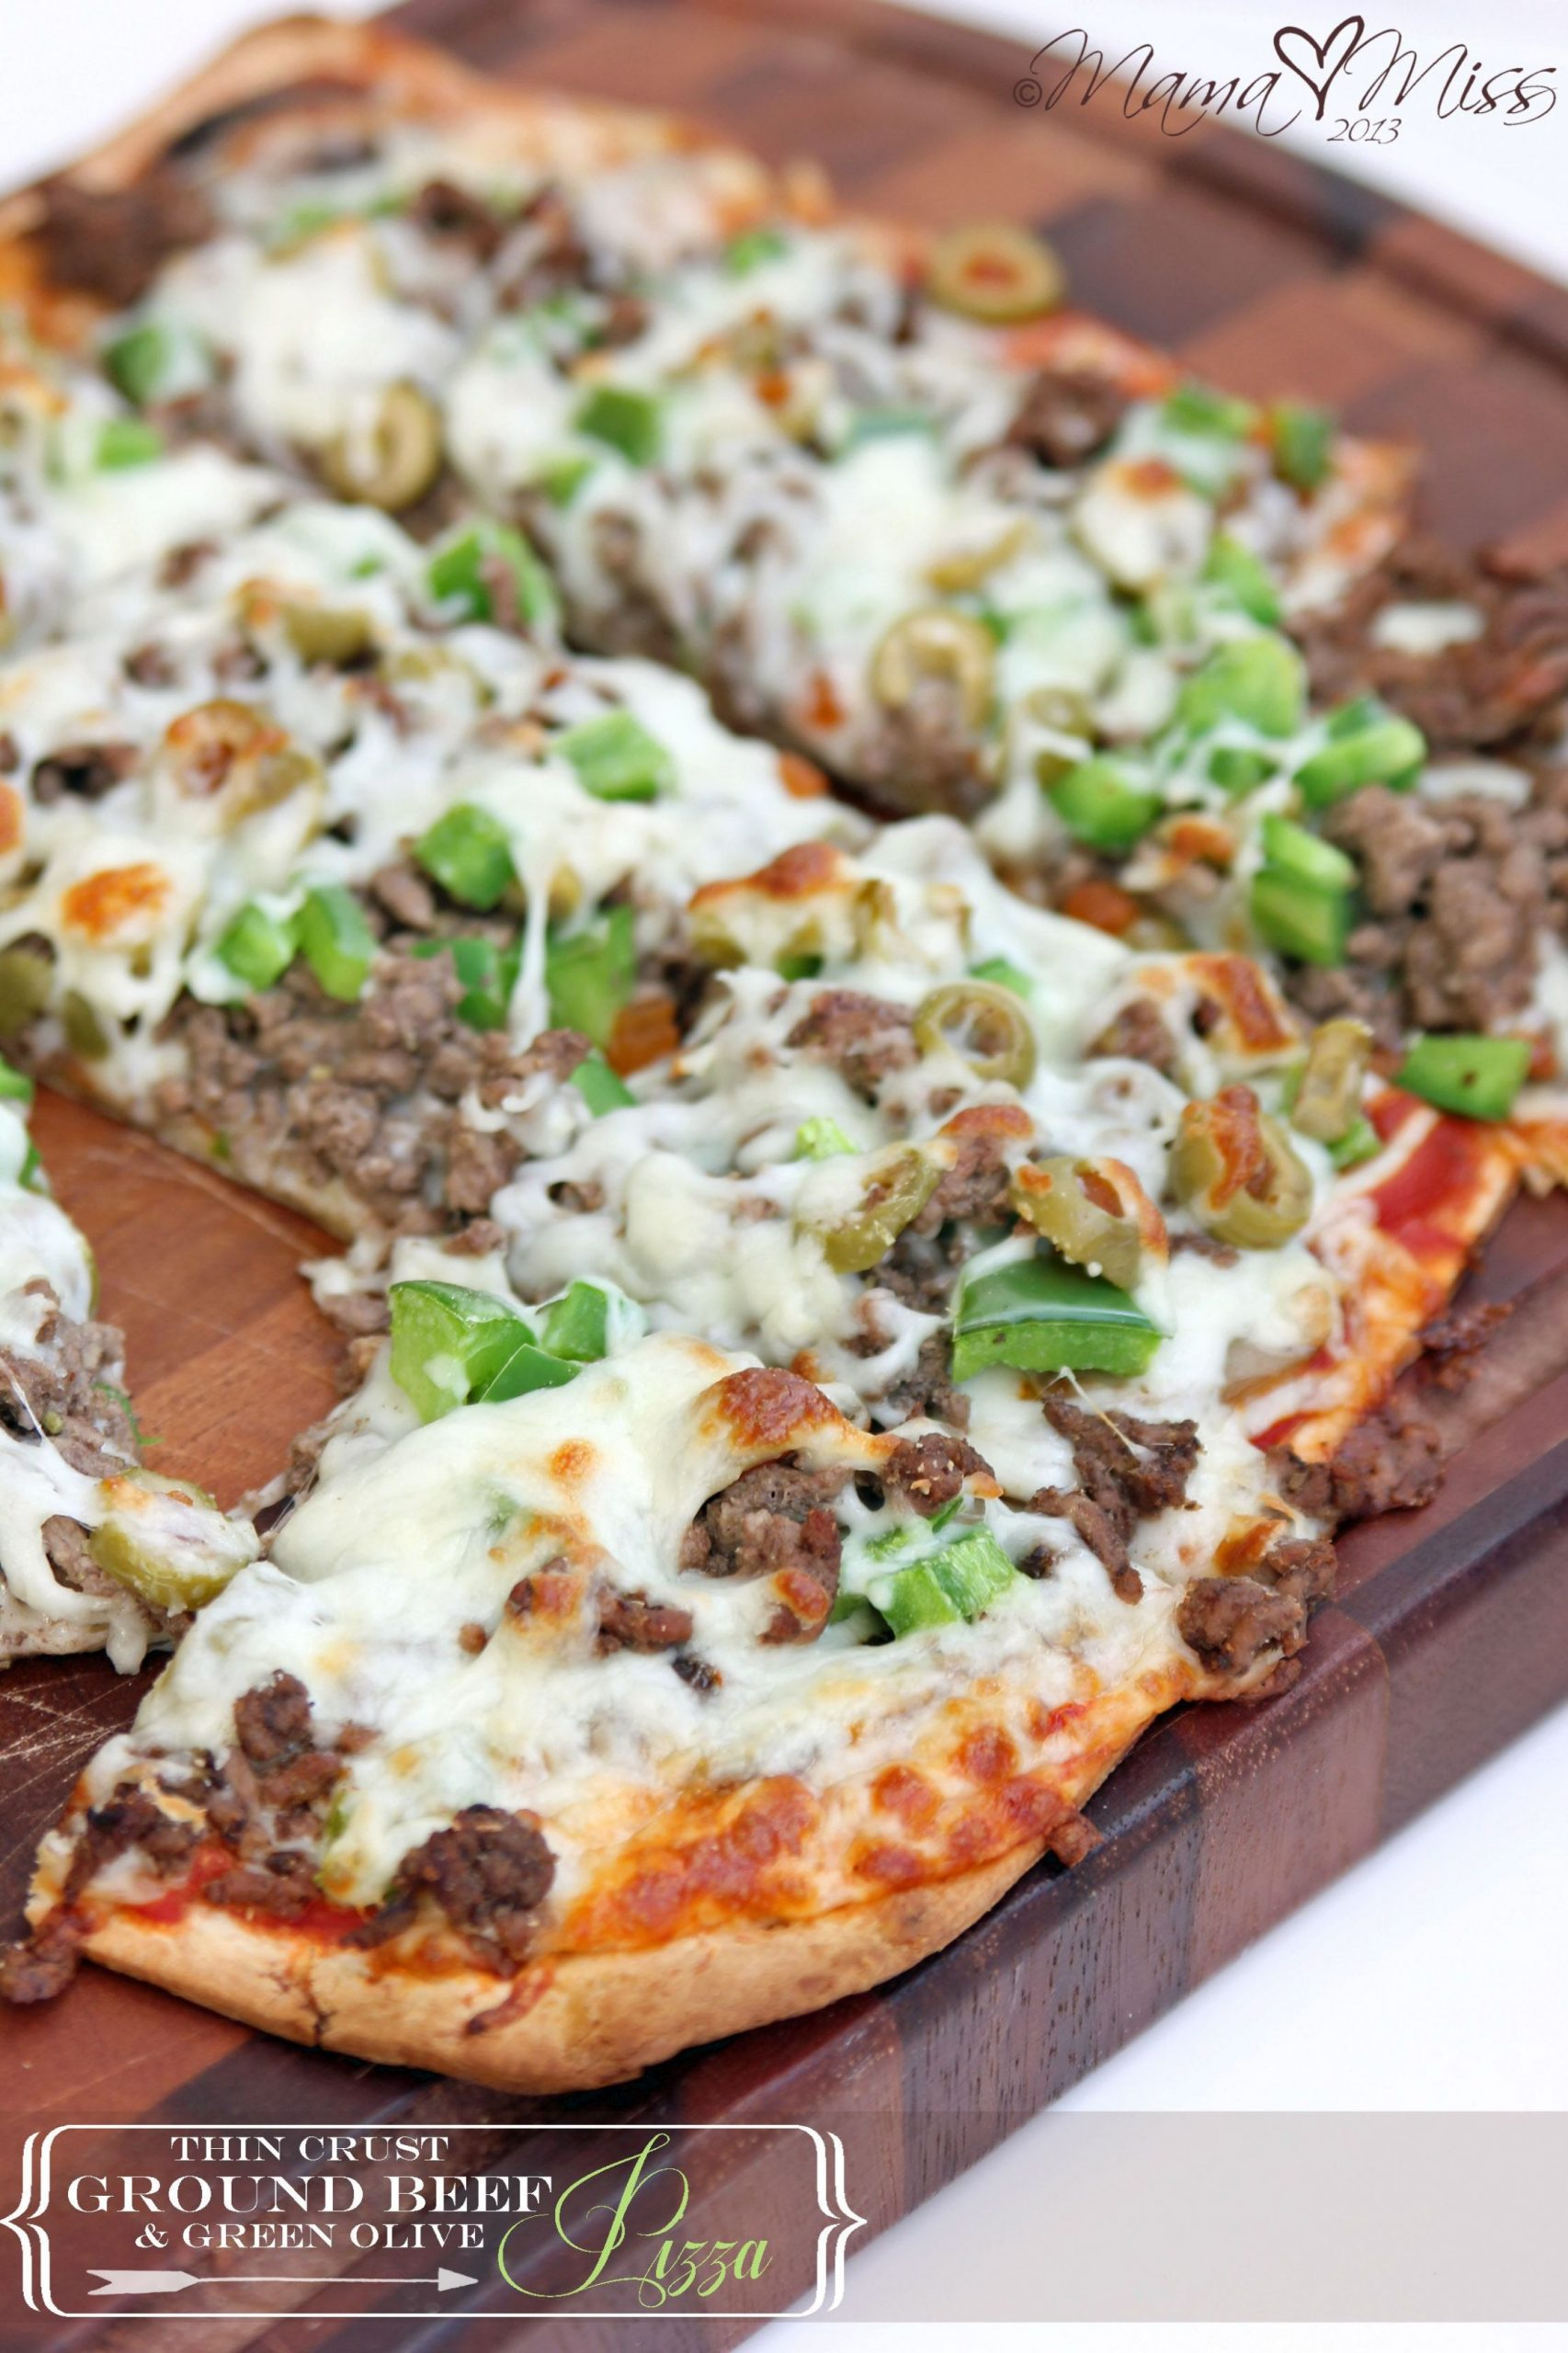 Thin Crust Ground Beef & Green Olive Pizza | Recipe | Olive pizza ..